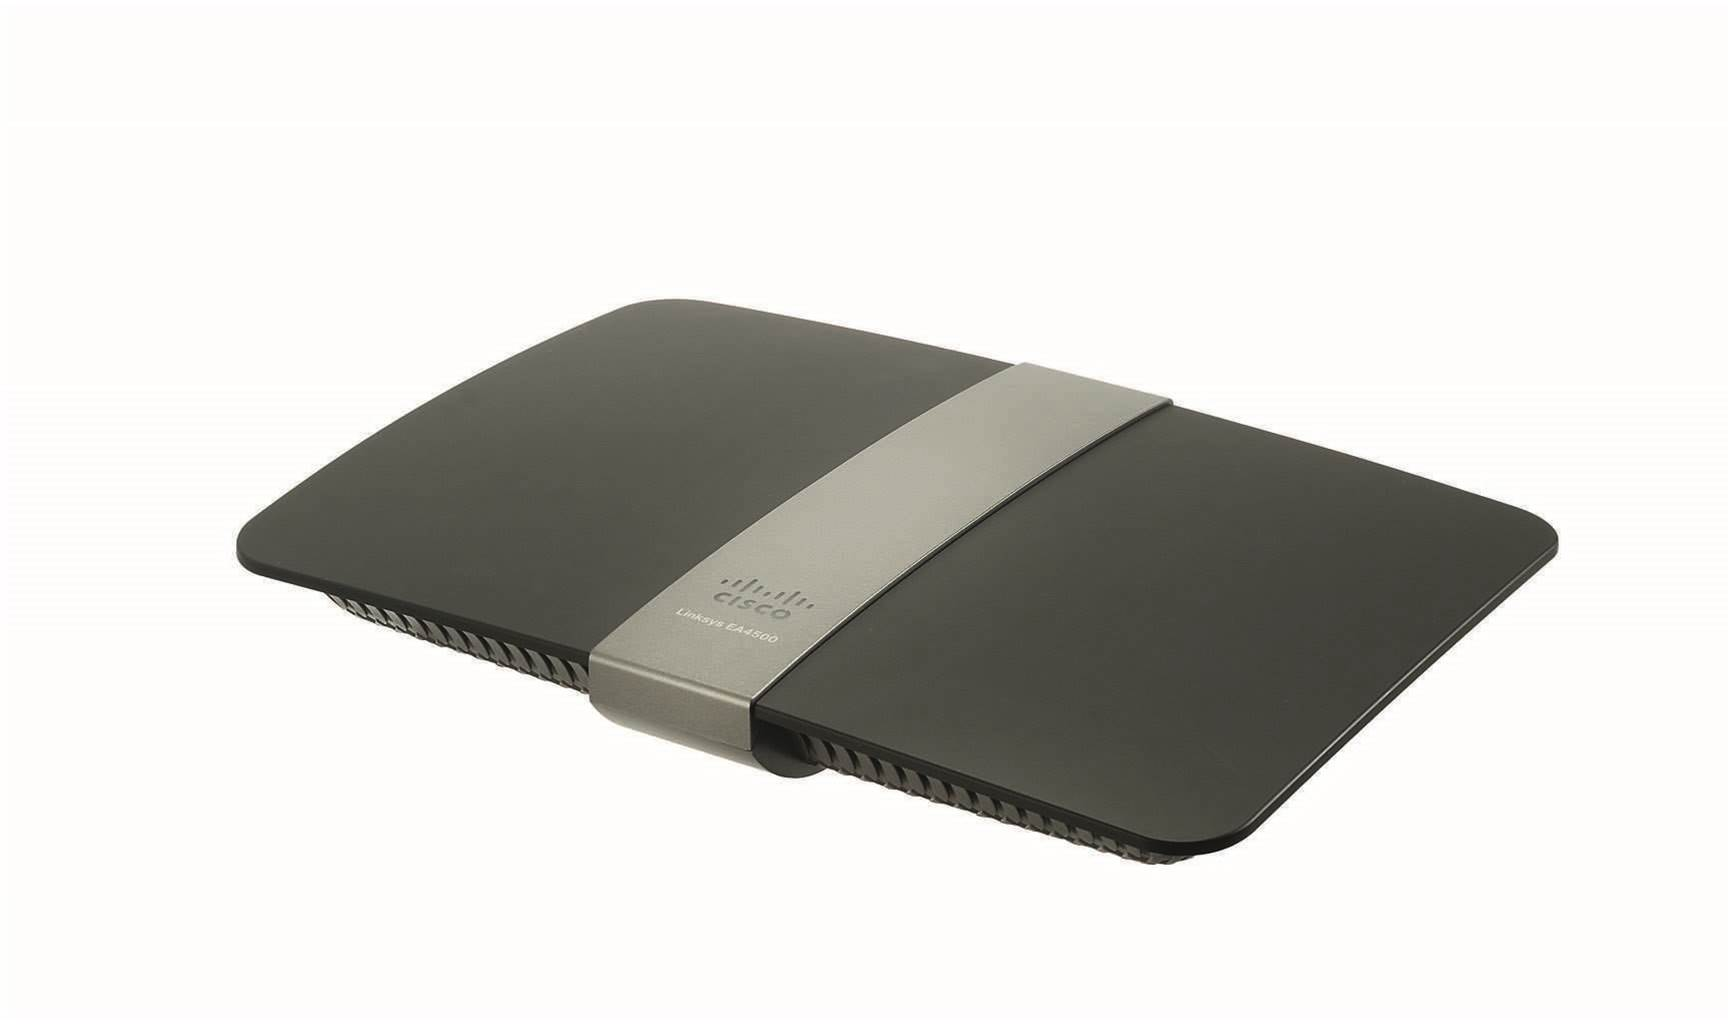 Review: CISCO Linksys EA4500